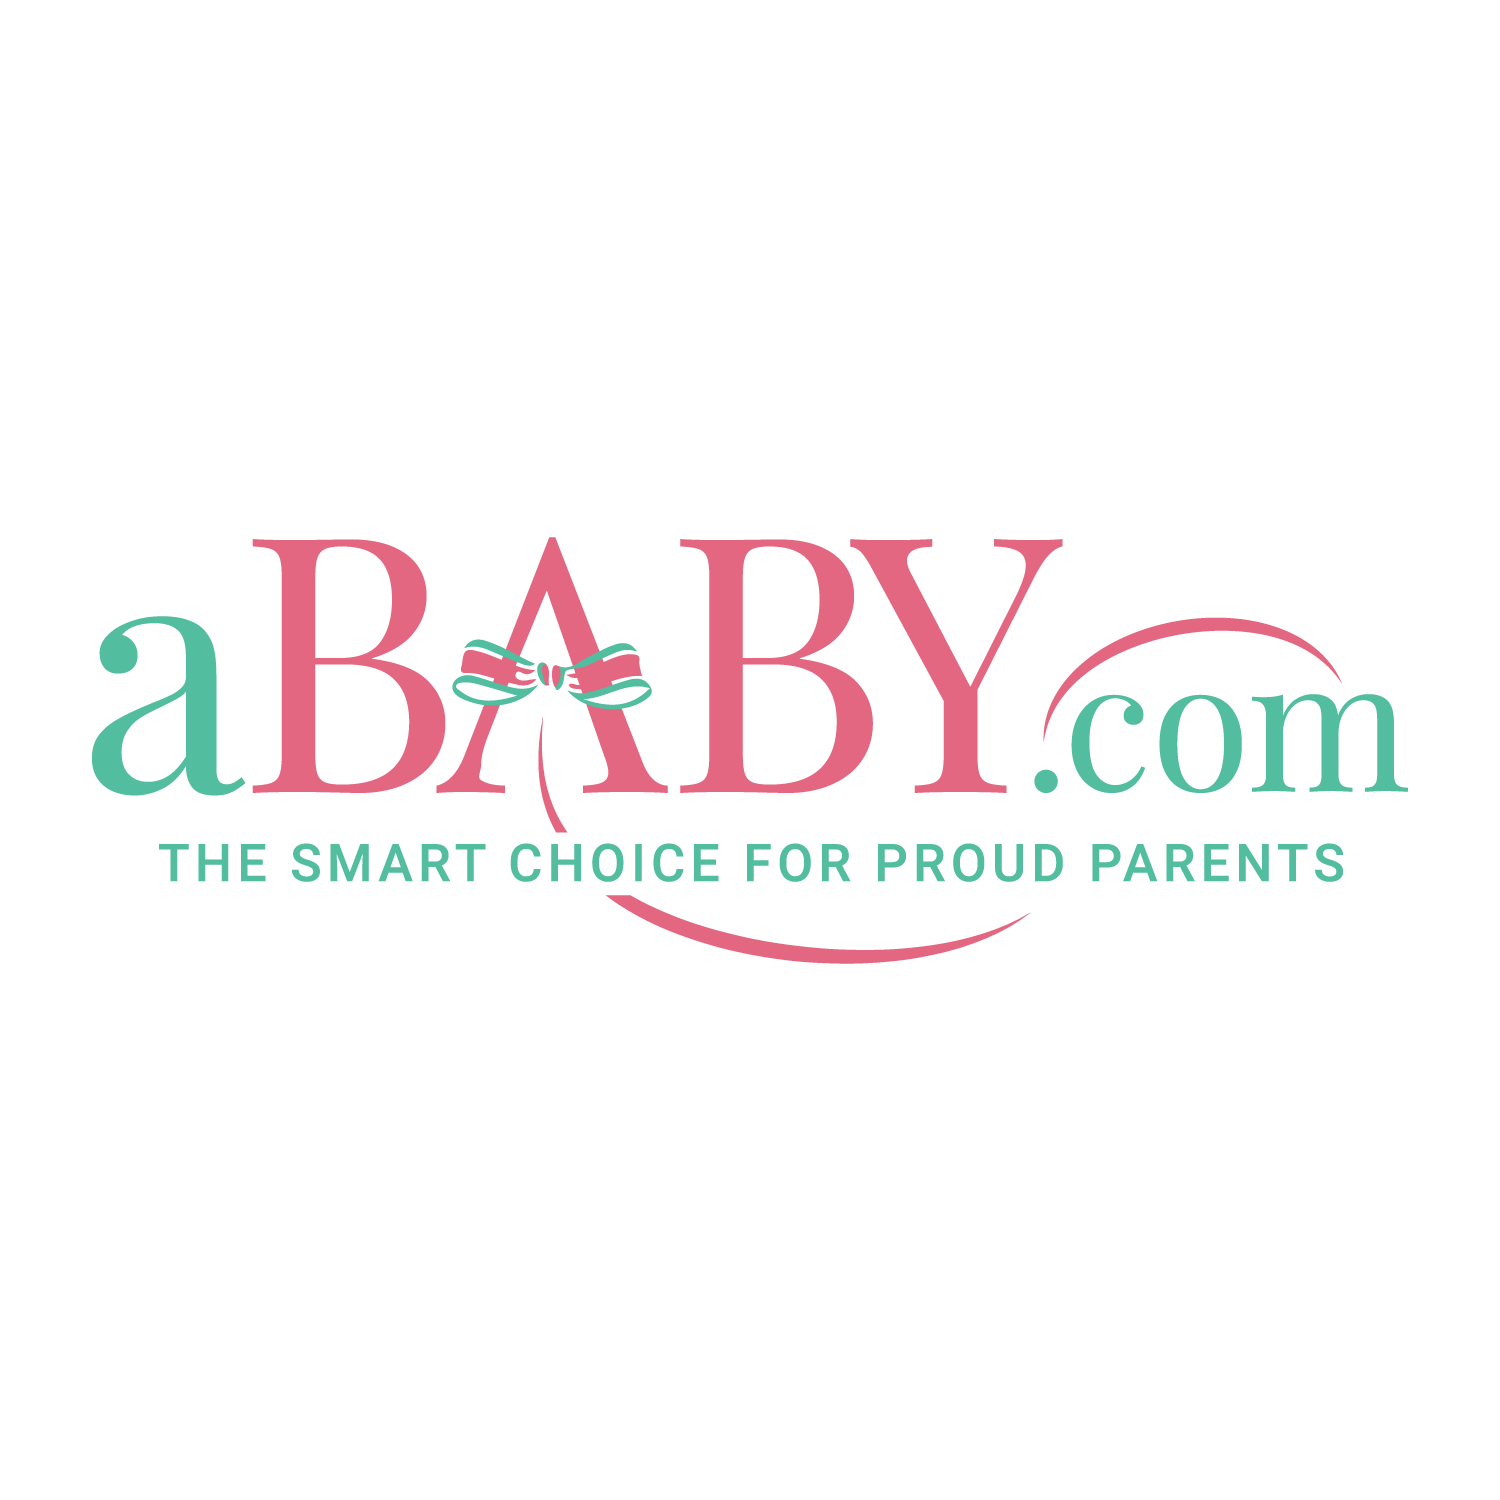 aBaby Reviews